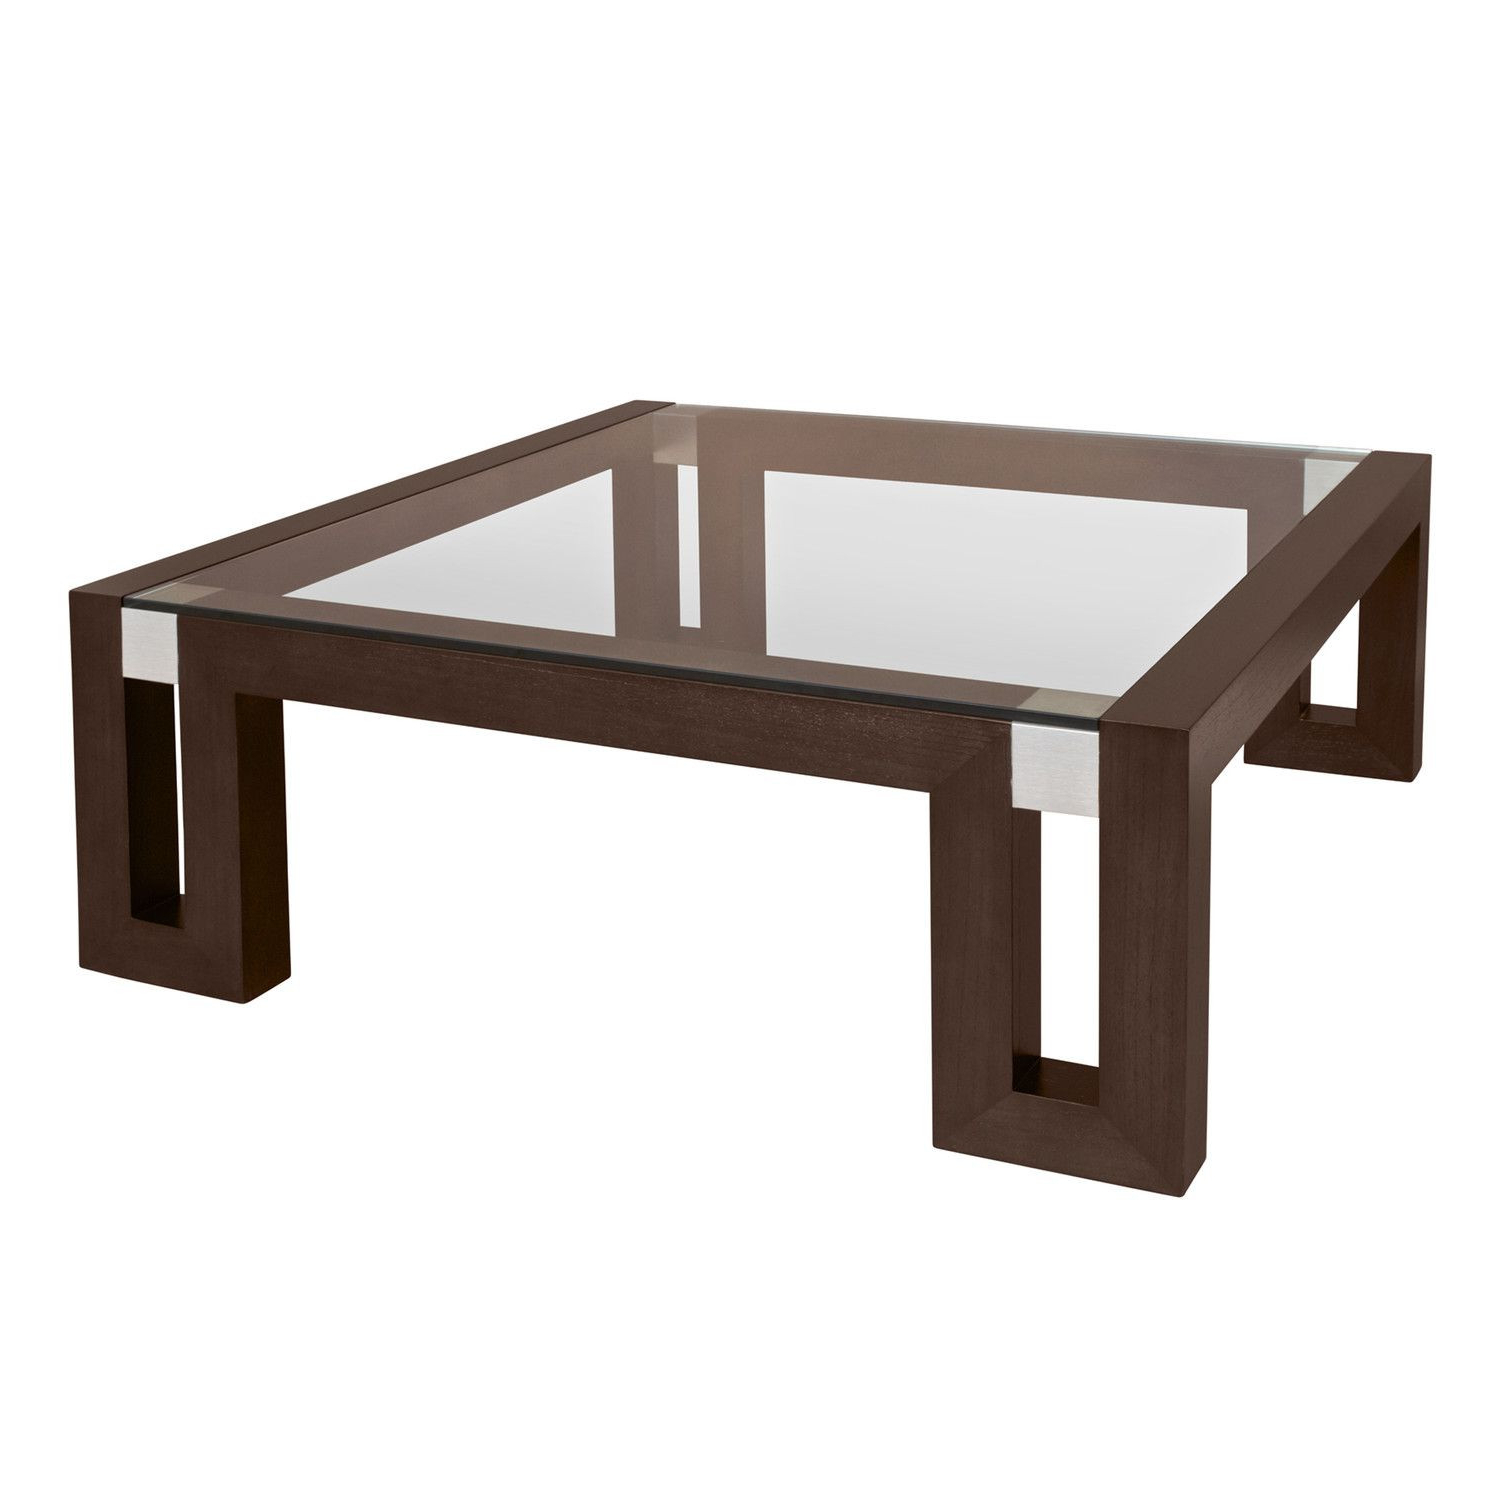 Latest Calligaris Element Coffee Table Awesome Allan Copley Designs Pertaining To Element Coffee Tables (View 12 of 20)